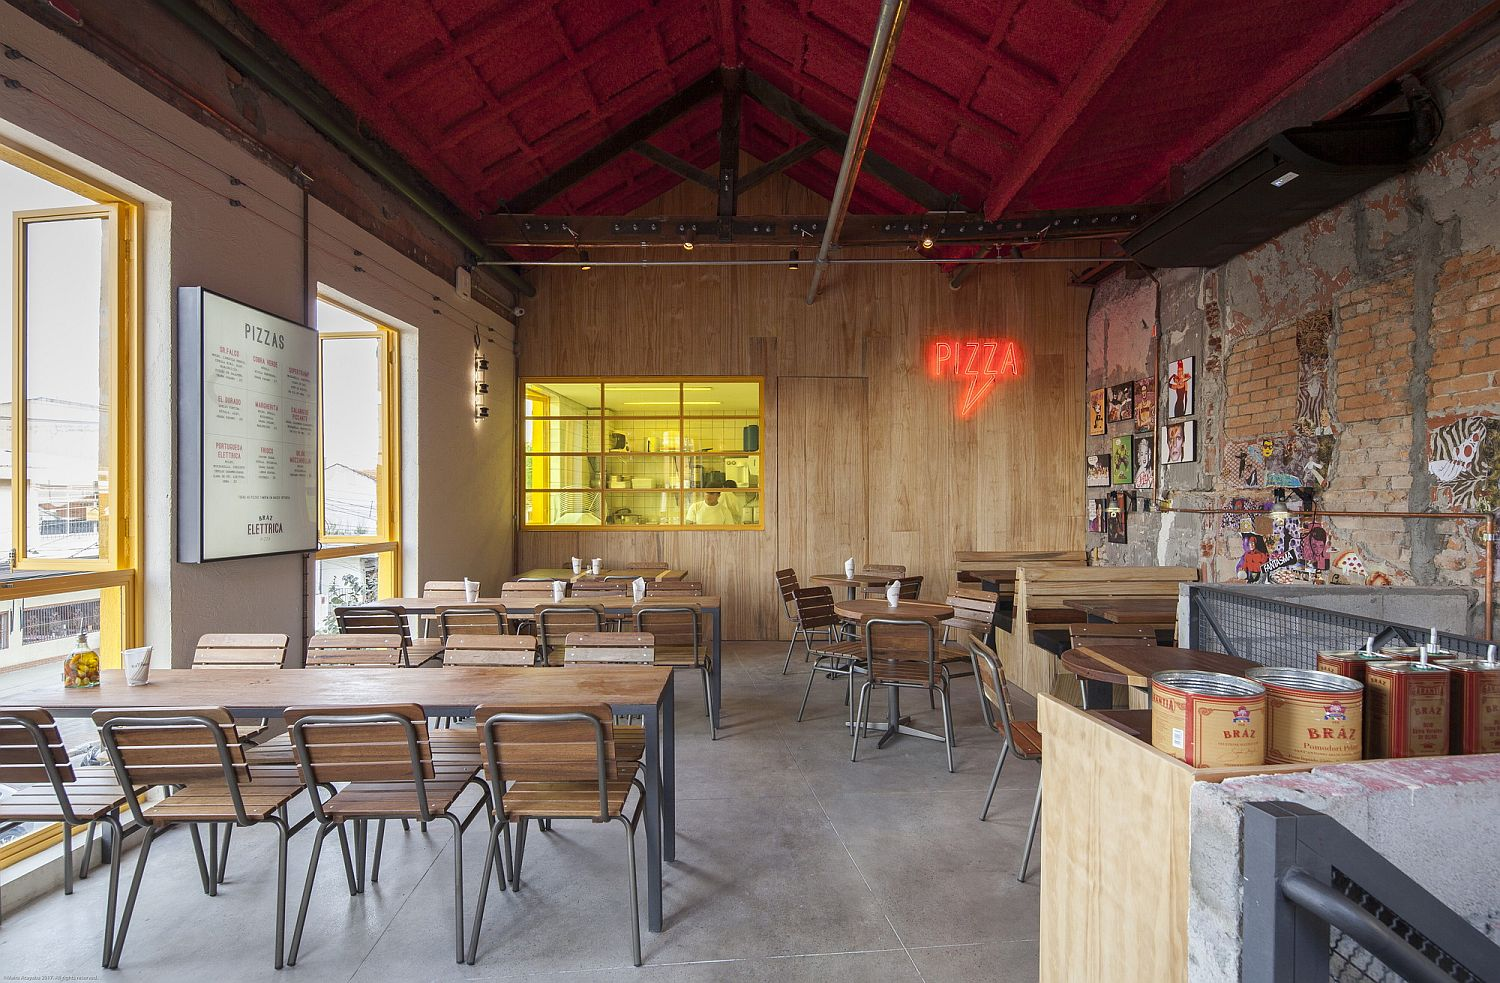 Light-filled-and-brilliant-interior-of-the-pizza-house-with-plenty-of-color